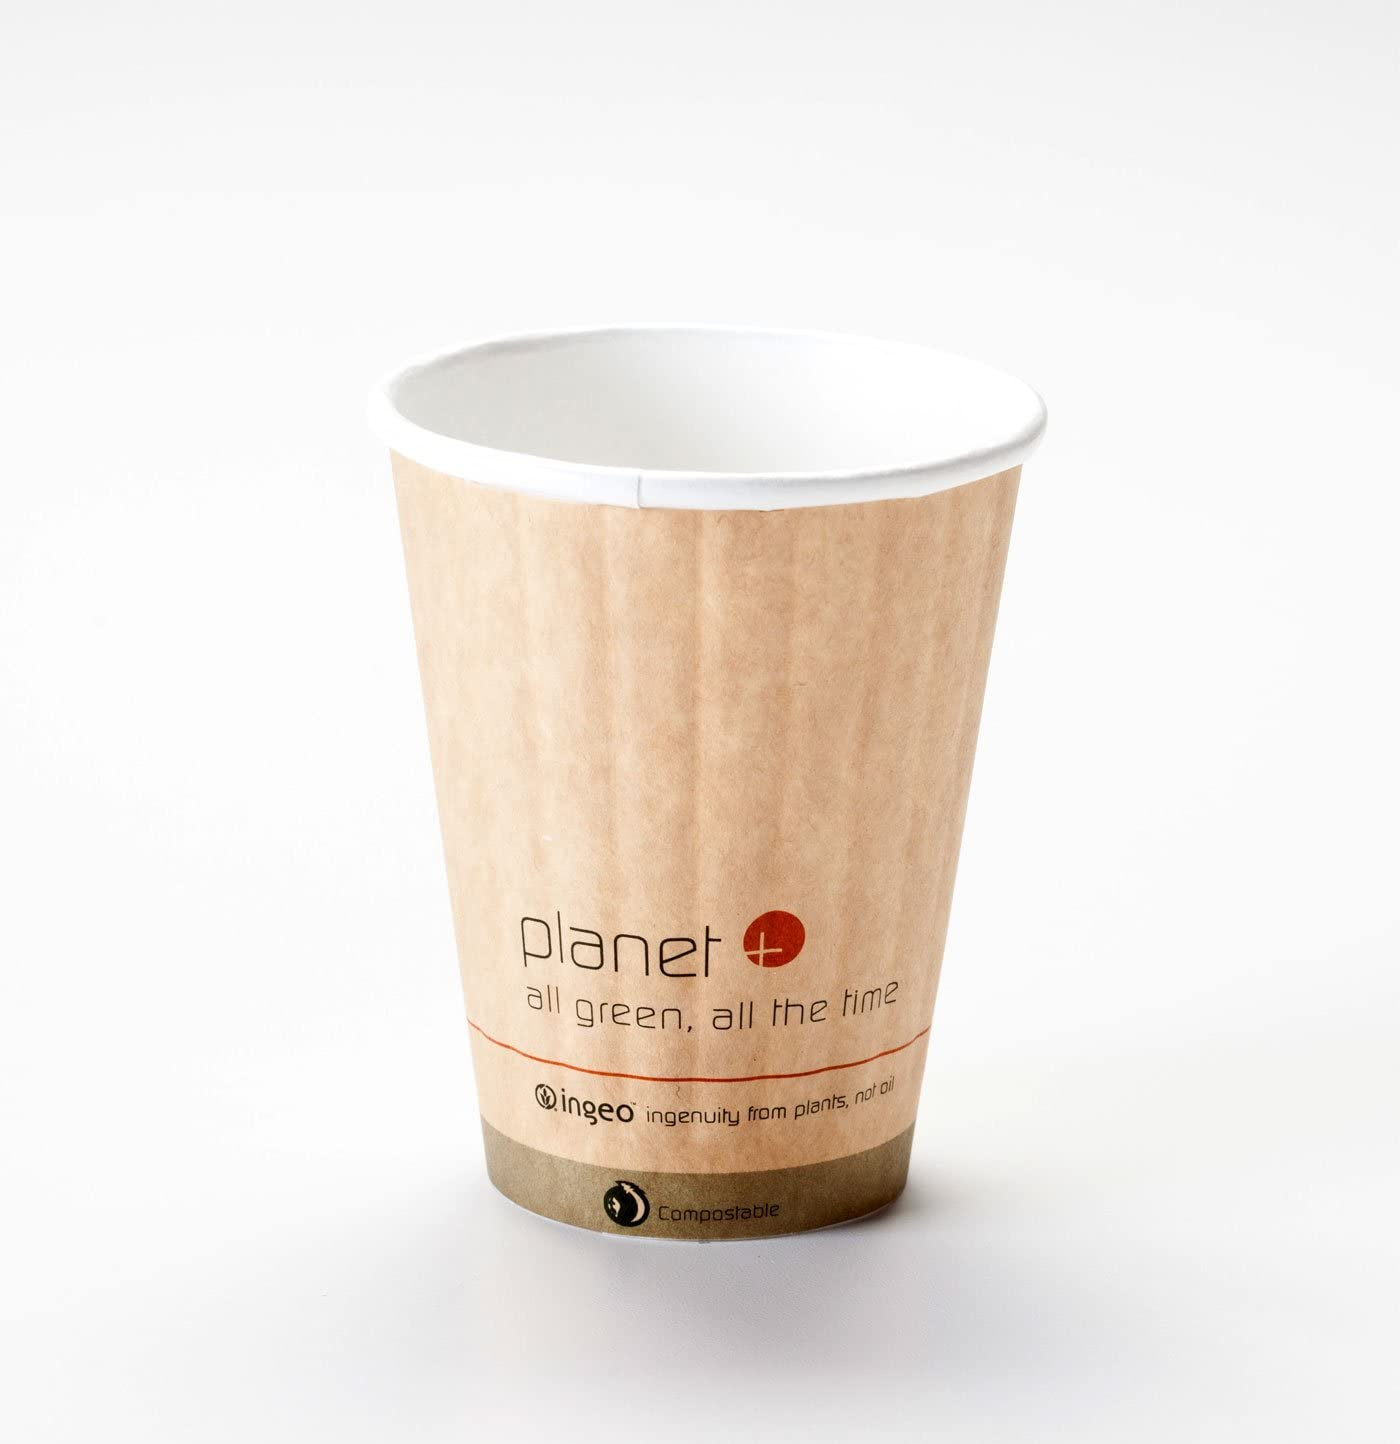 8 Oz. Biodegradable Hot Drink Cup Heat Boston Mall Lined PLA Built-in Los Angeles Mall Sleeve